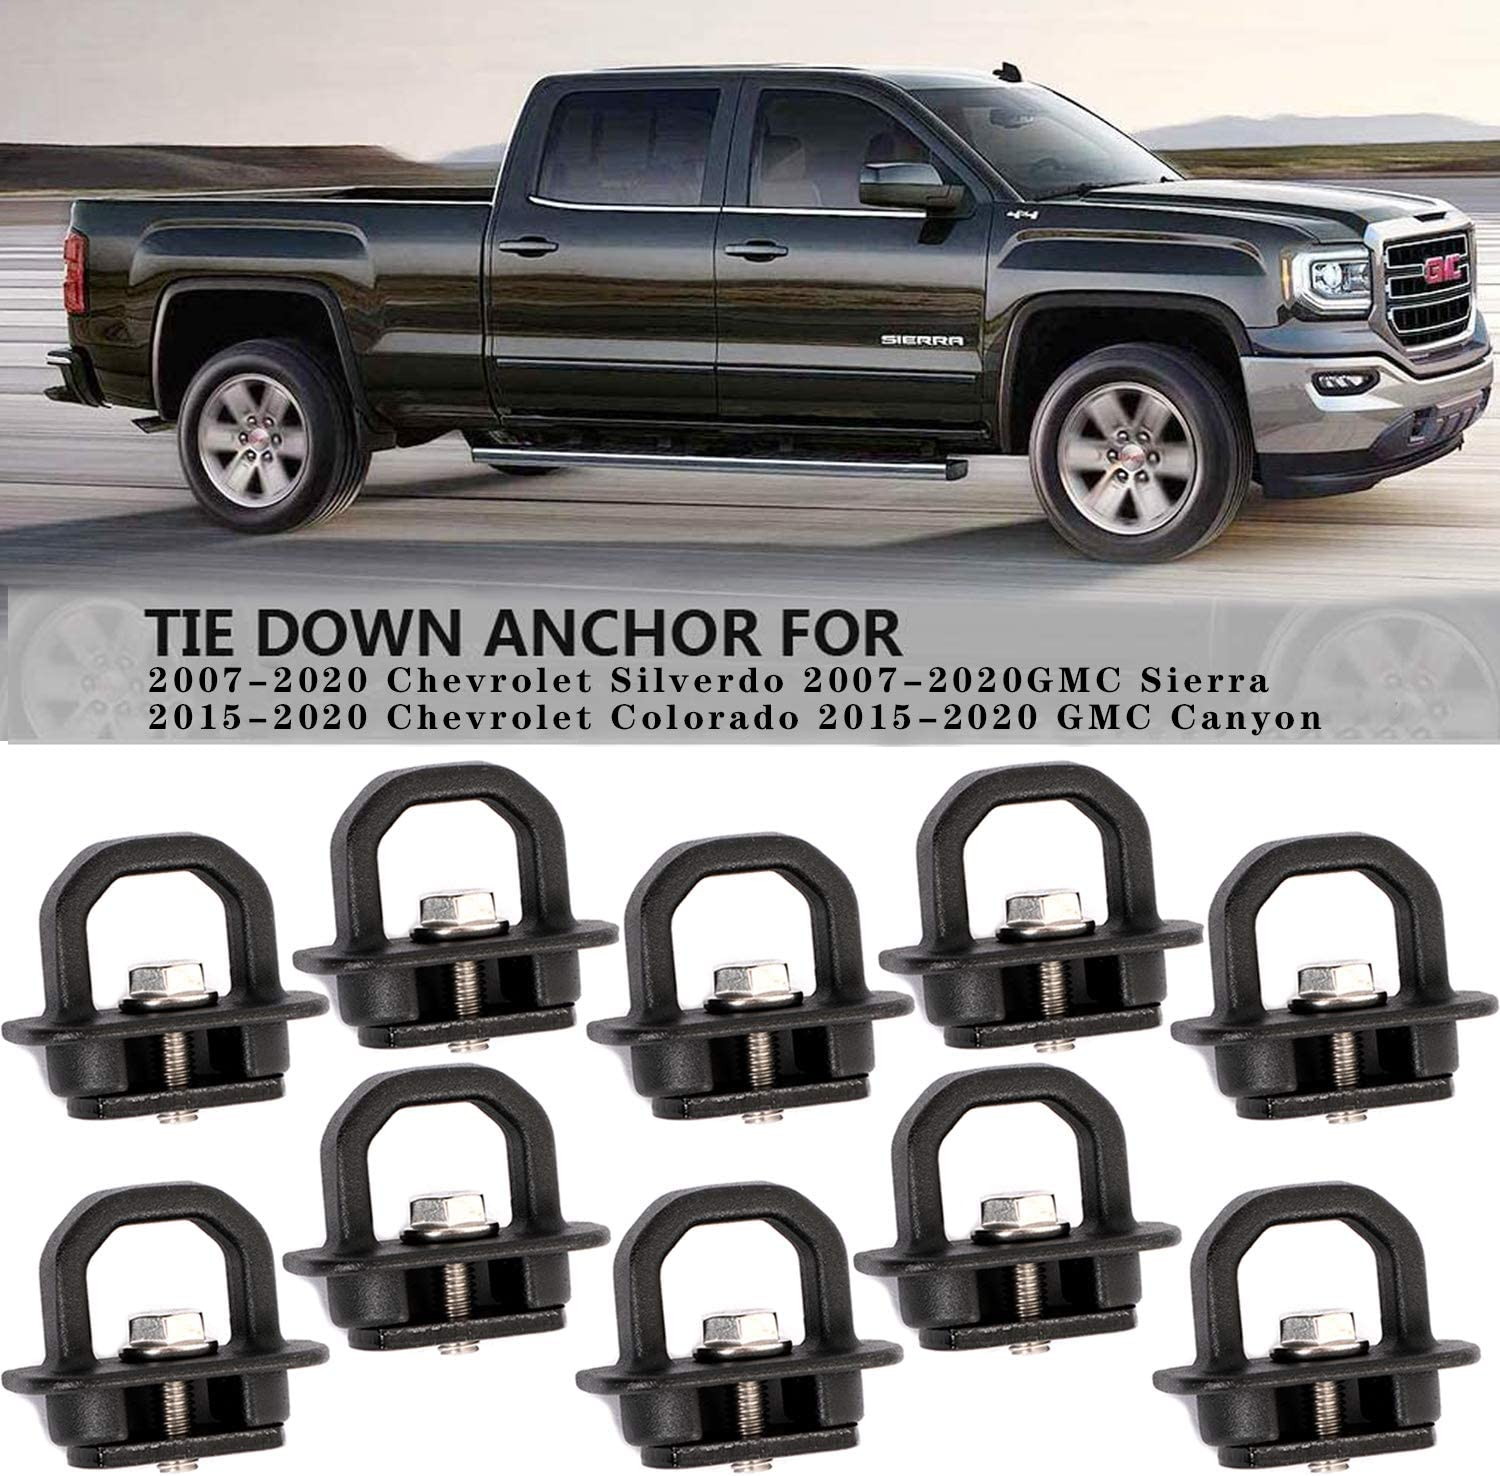 USTAR 10-Pack Truck Bed Side Wall Anchor Pickup Tie Downs Anchors Compatible with Chevy Silverdo Sierra 2007-2018,Colorado Canyon 2015-2018